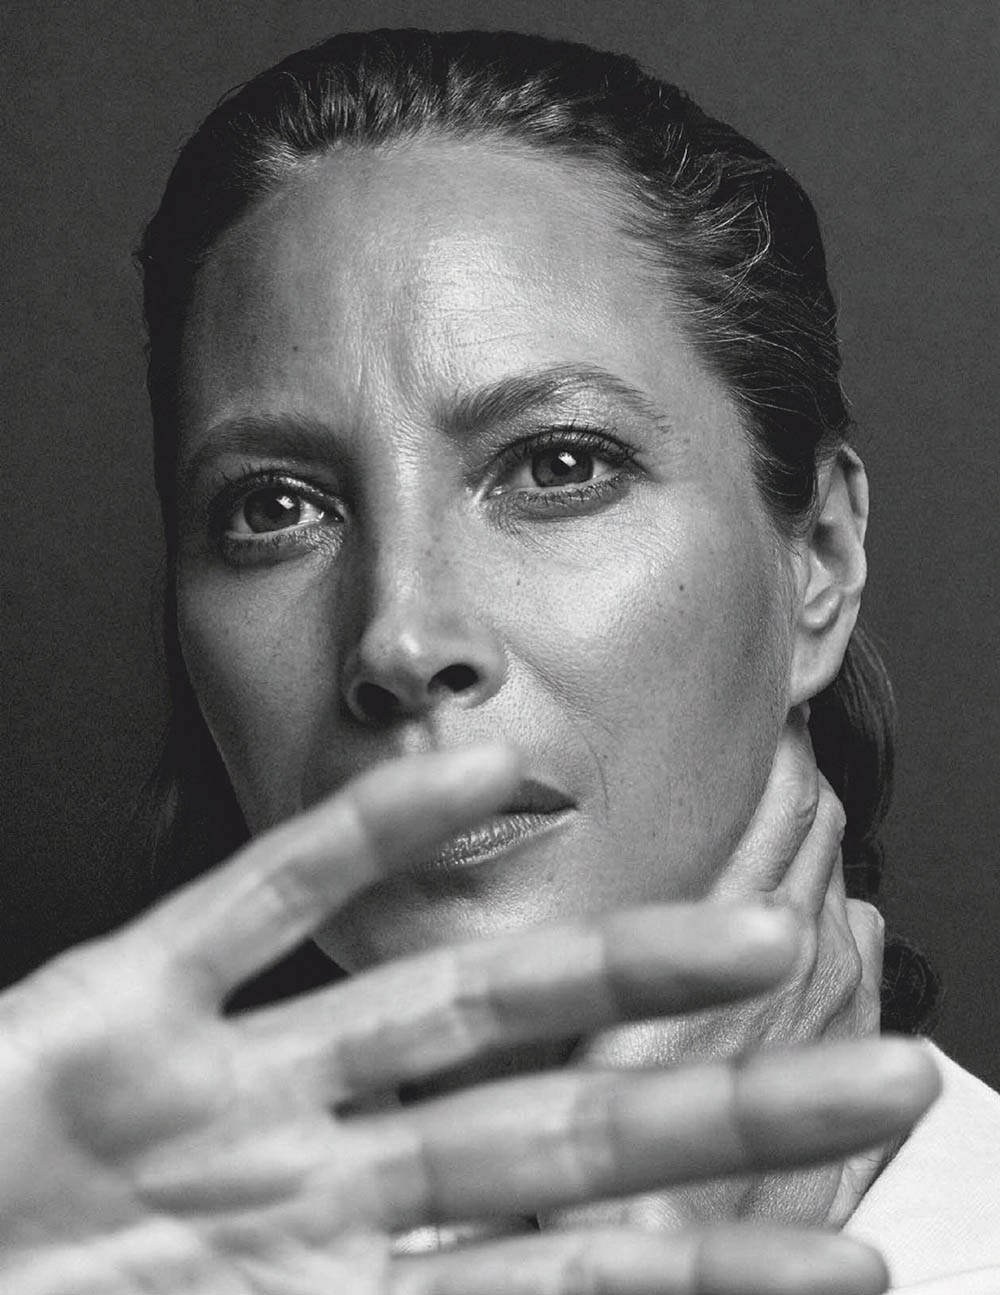 Christy Turlington covers Vogue Mexico & Latin America May 2019 by Alique